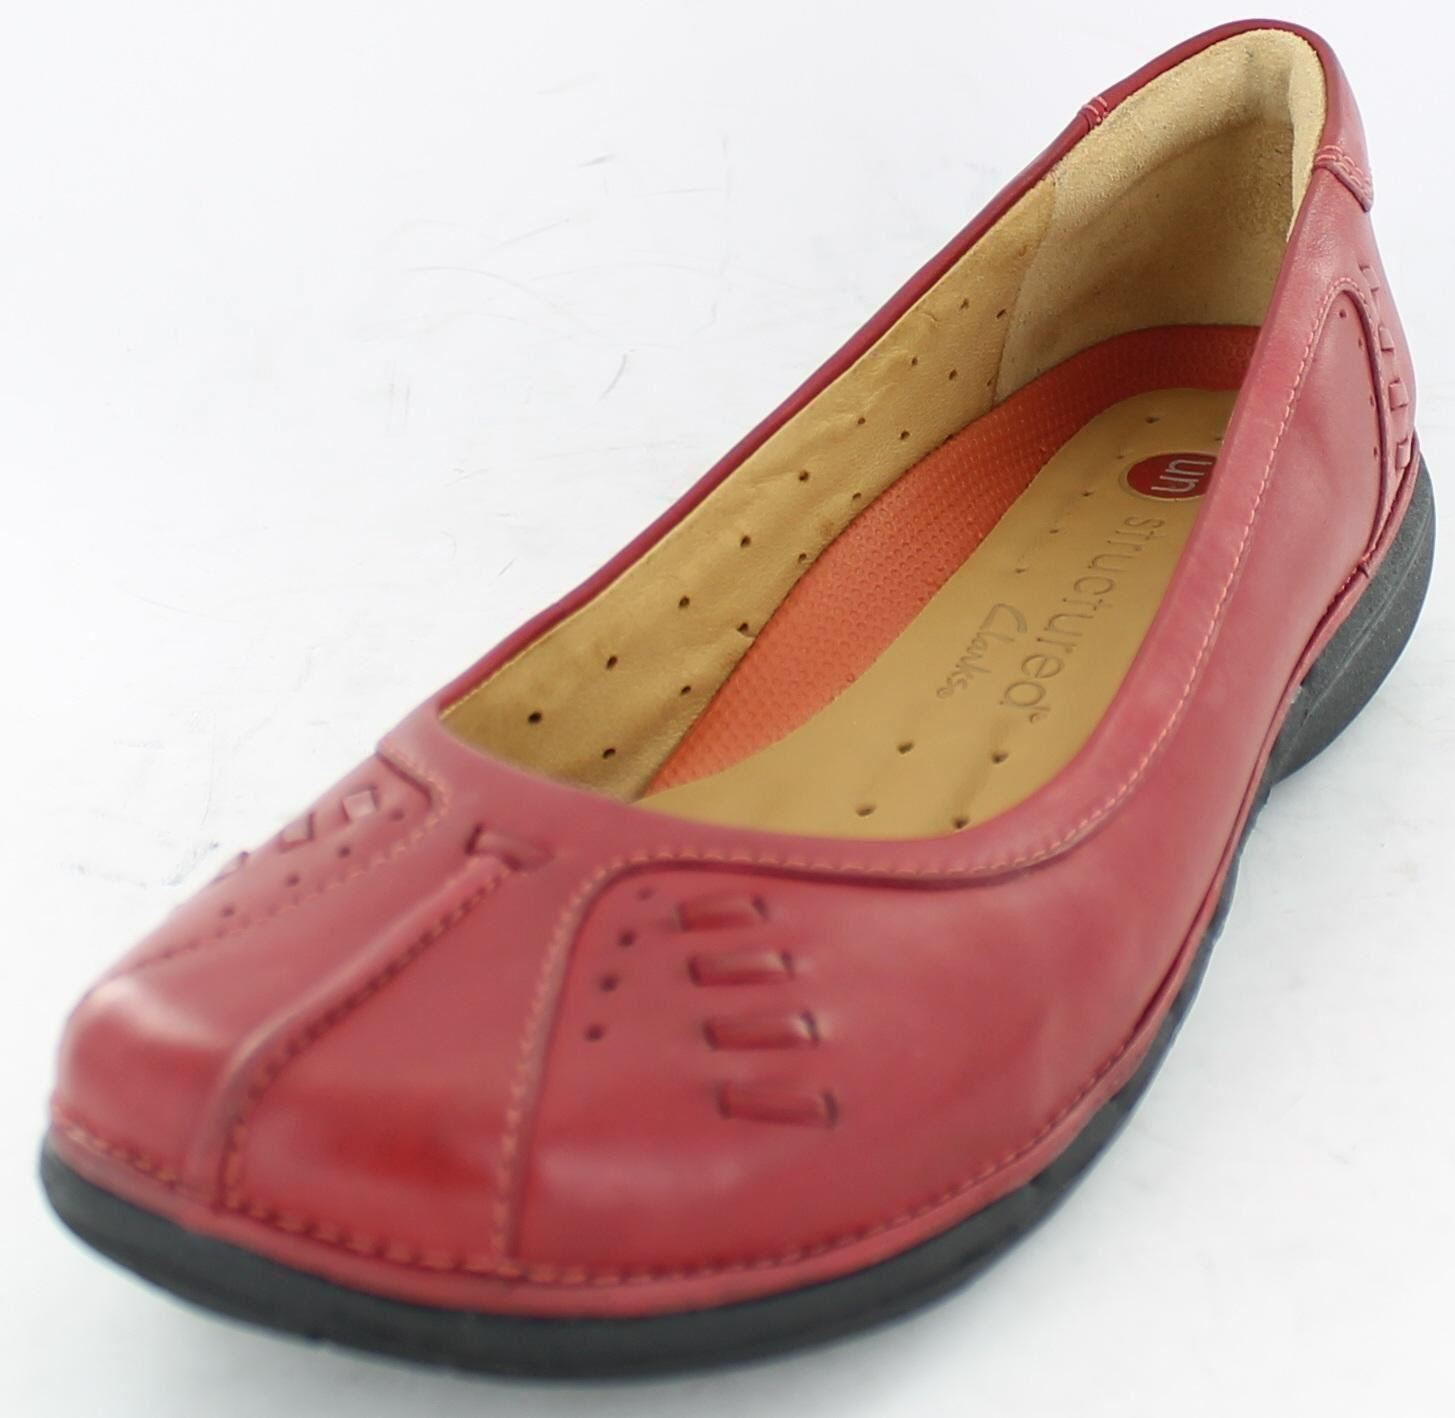 Model Clarks Anika Kendra Wine Leather Womens Shoes  Weoee Fashion